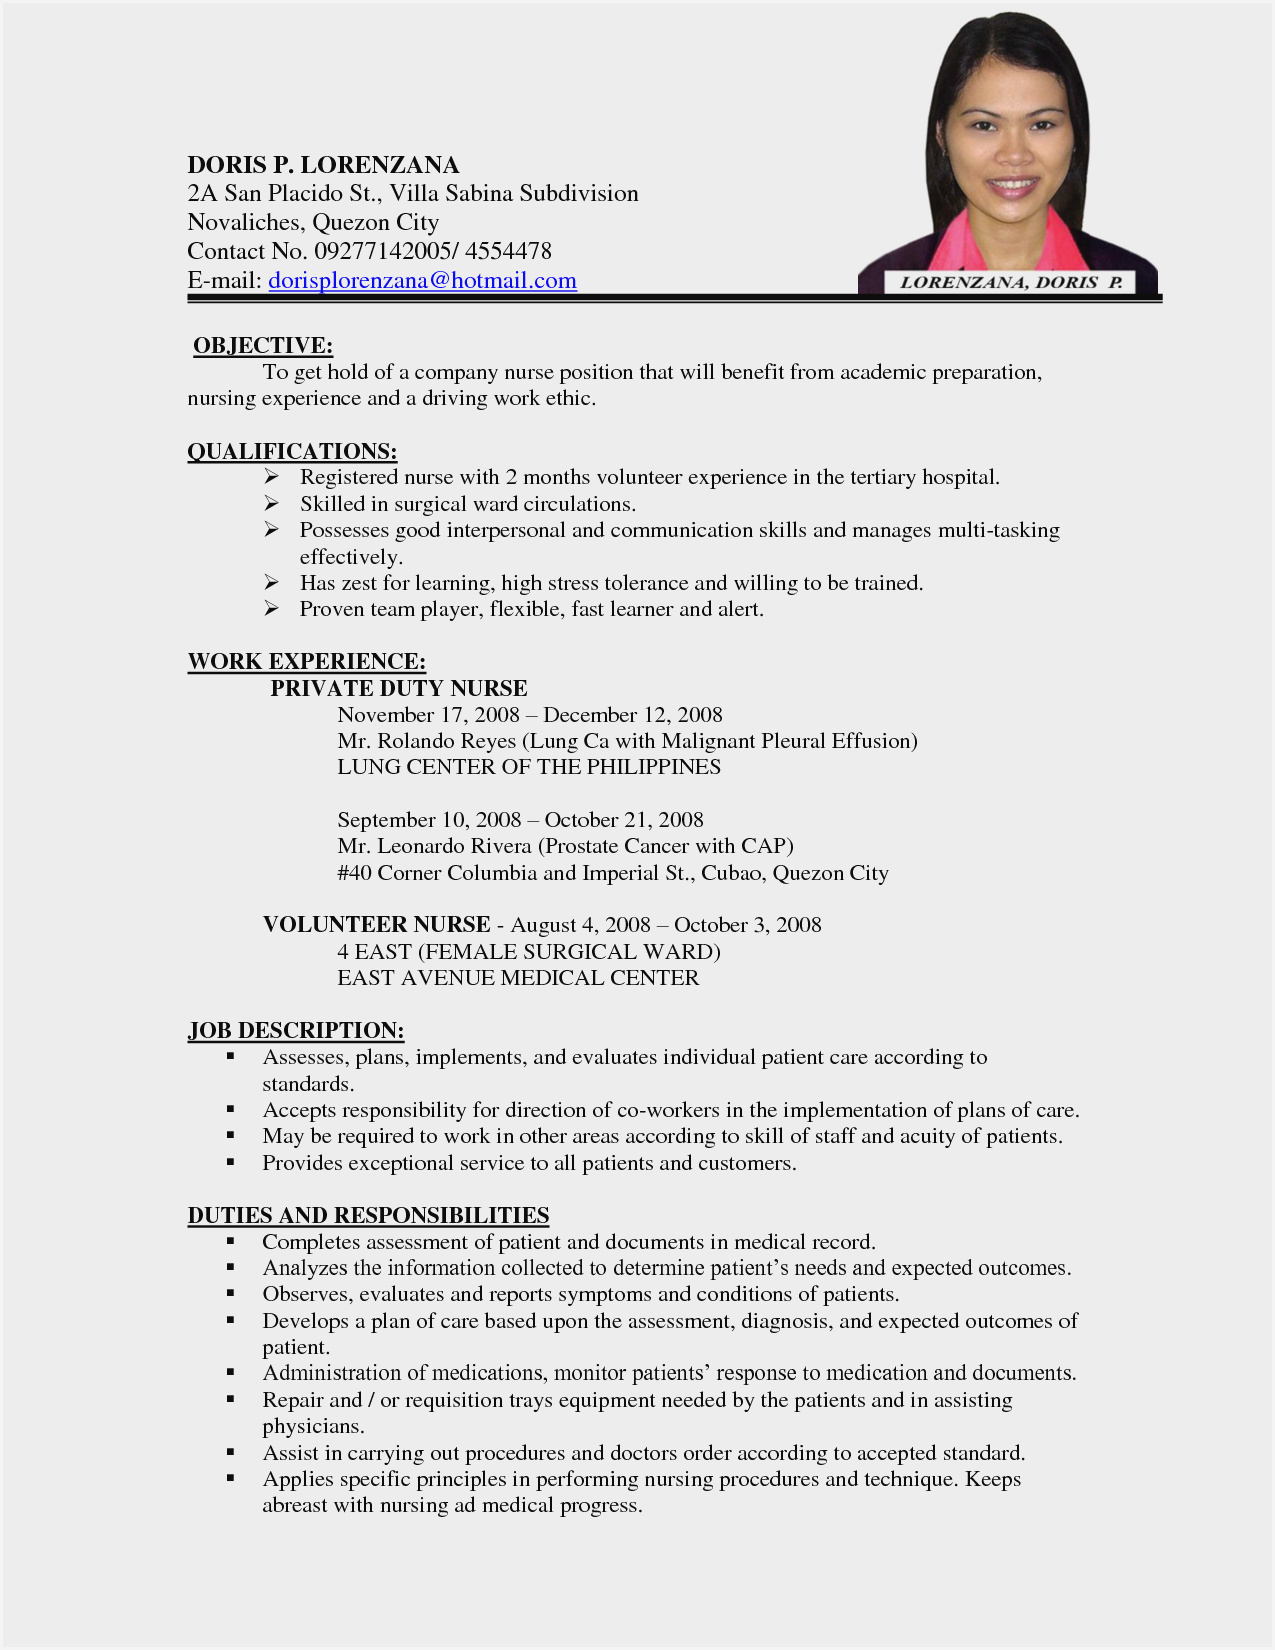 sample resume for bsc nursing fresher pdf format nurses freshers duplicity dos and don ts Resume Sample Resume For Bsc Nursing Fresher